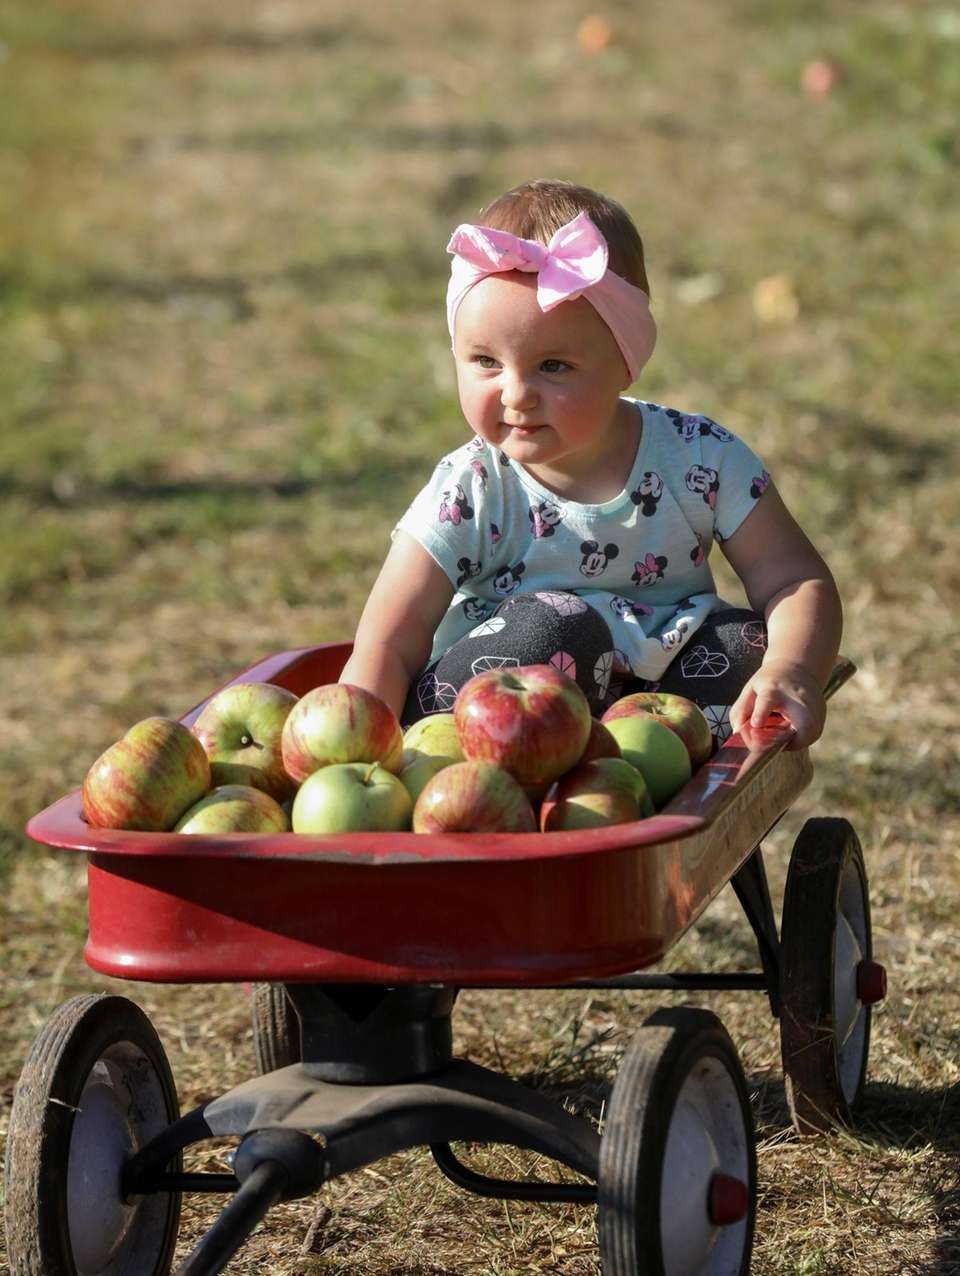 Sixteen-month-old Emily Gosek, of Copiague, is enthralled by